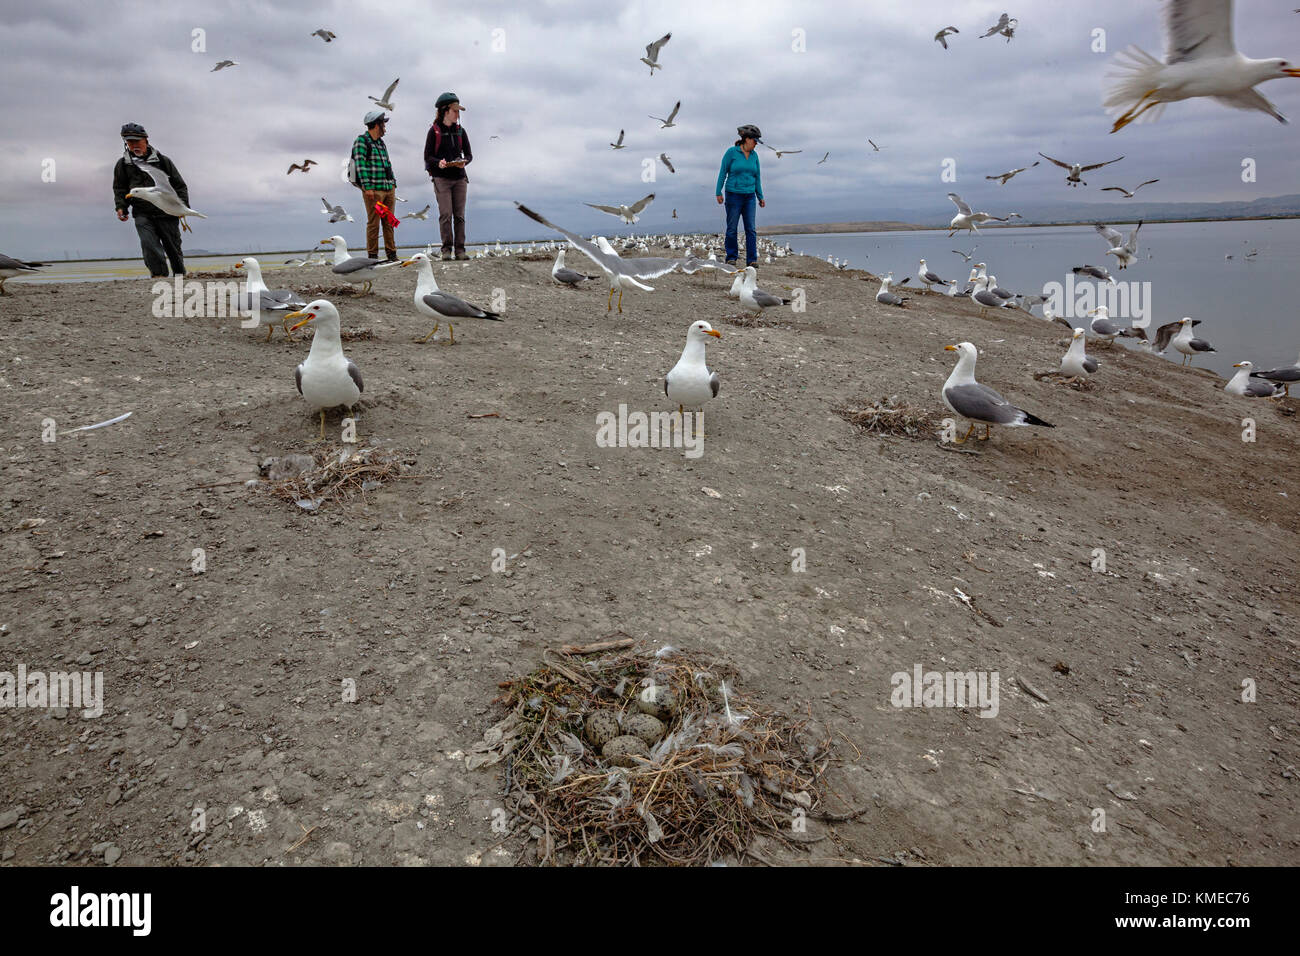 Members of San Francisco Bay Bird Observatory survey California Gull in South Bay restoration area near Aviso, California, - Stock Image